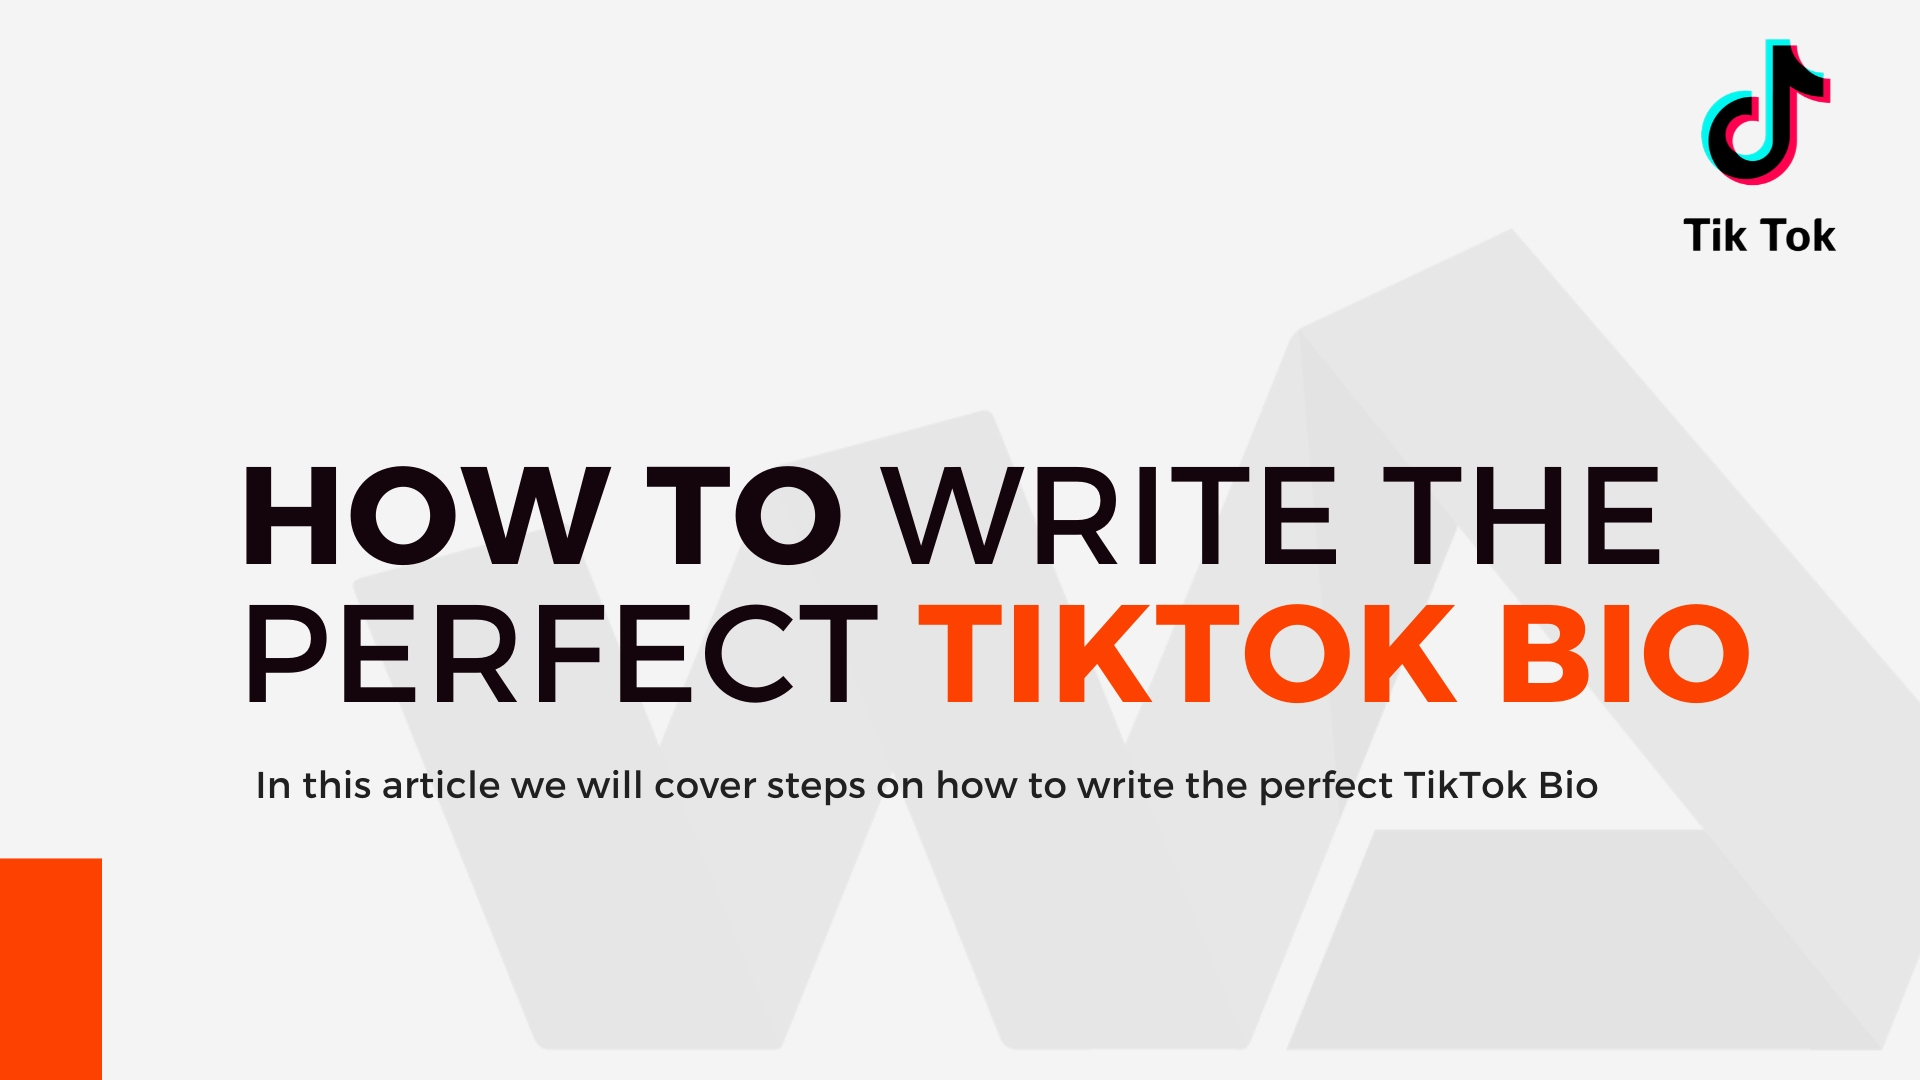 5 Tips For Writing Killer Bio For More TikTok Followers